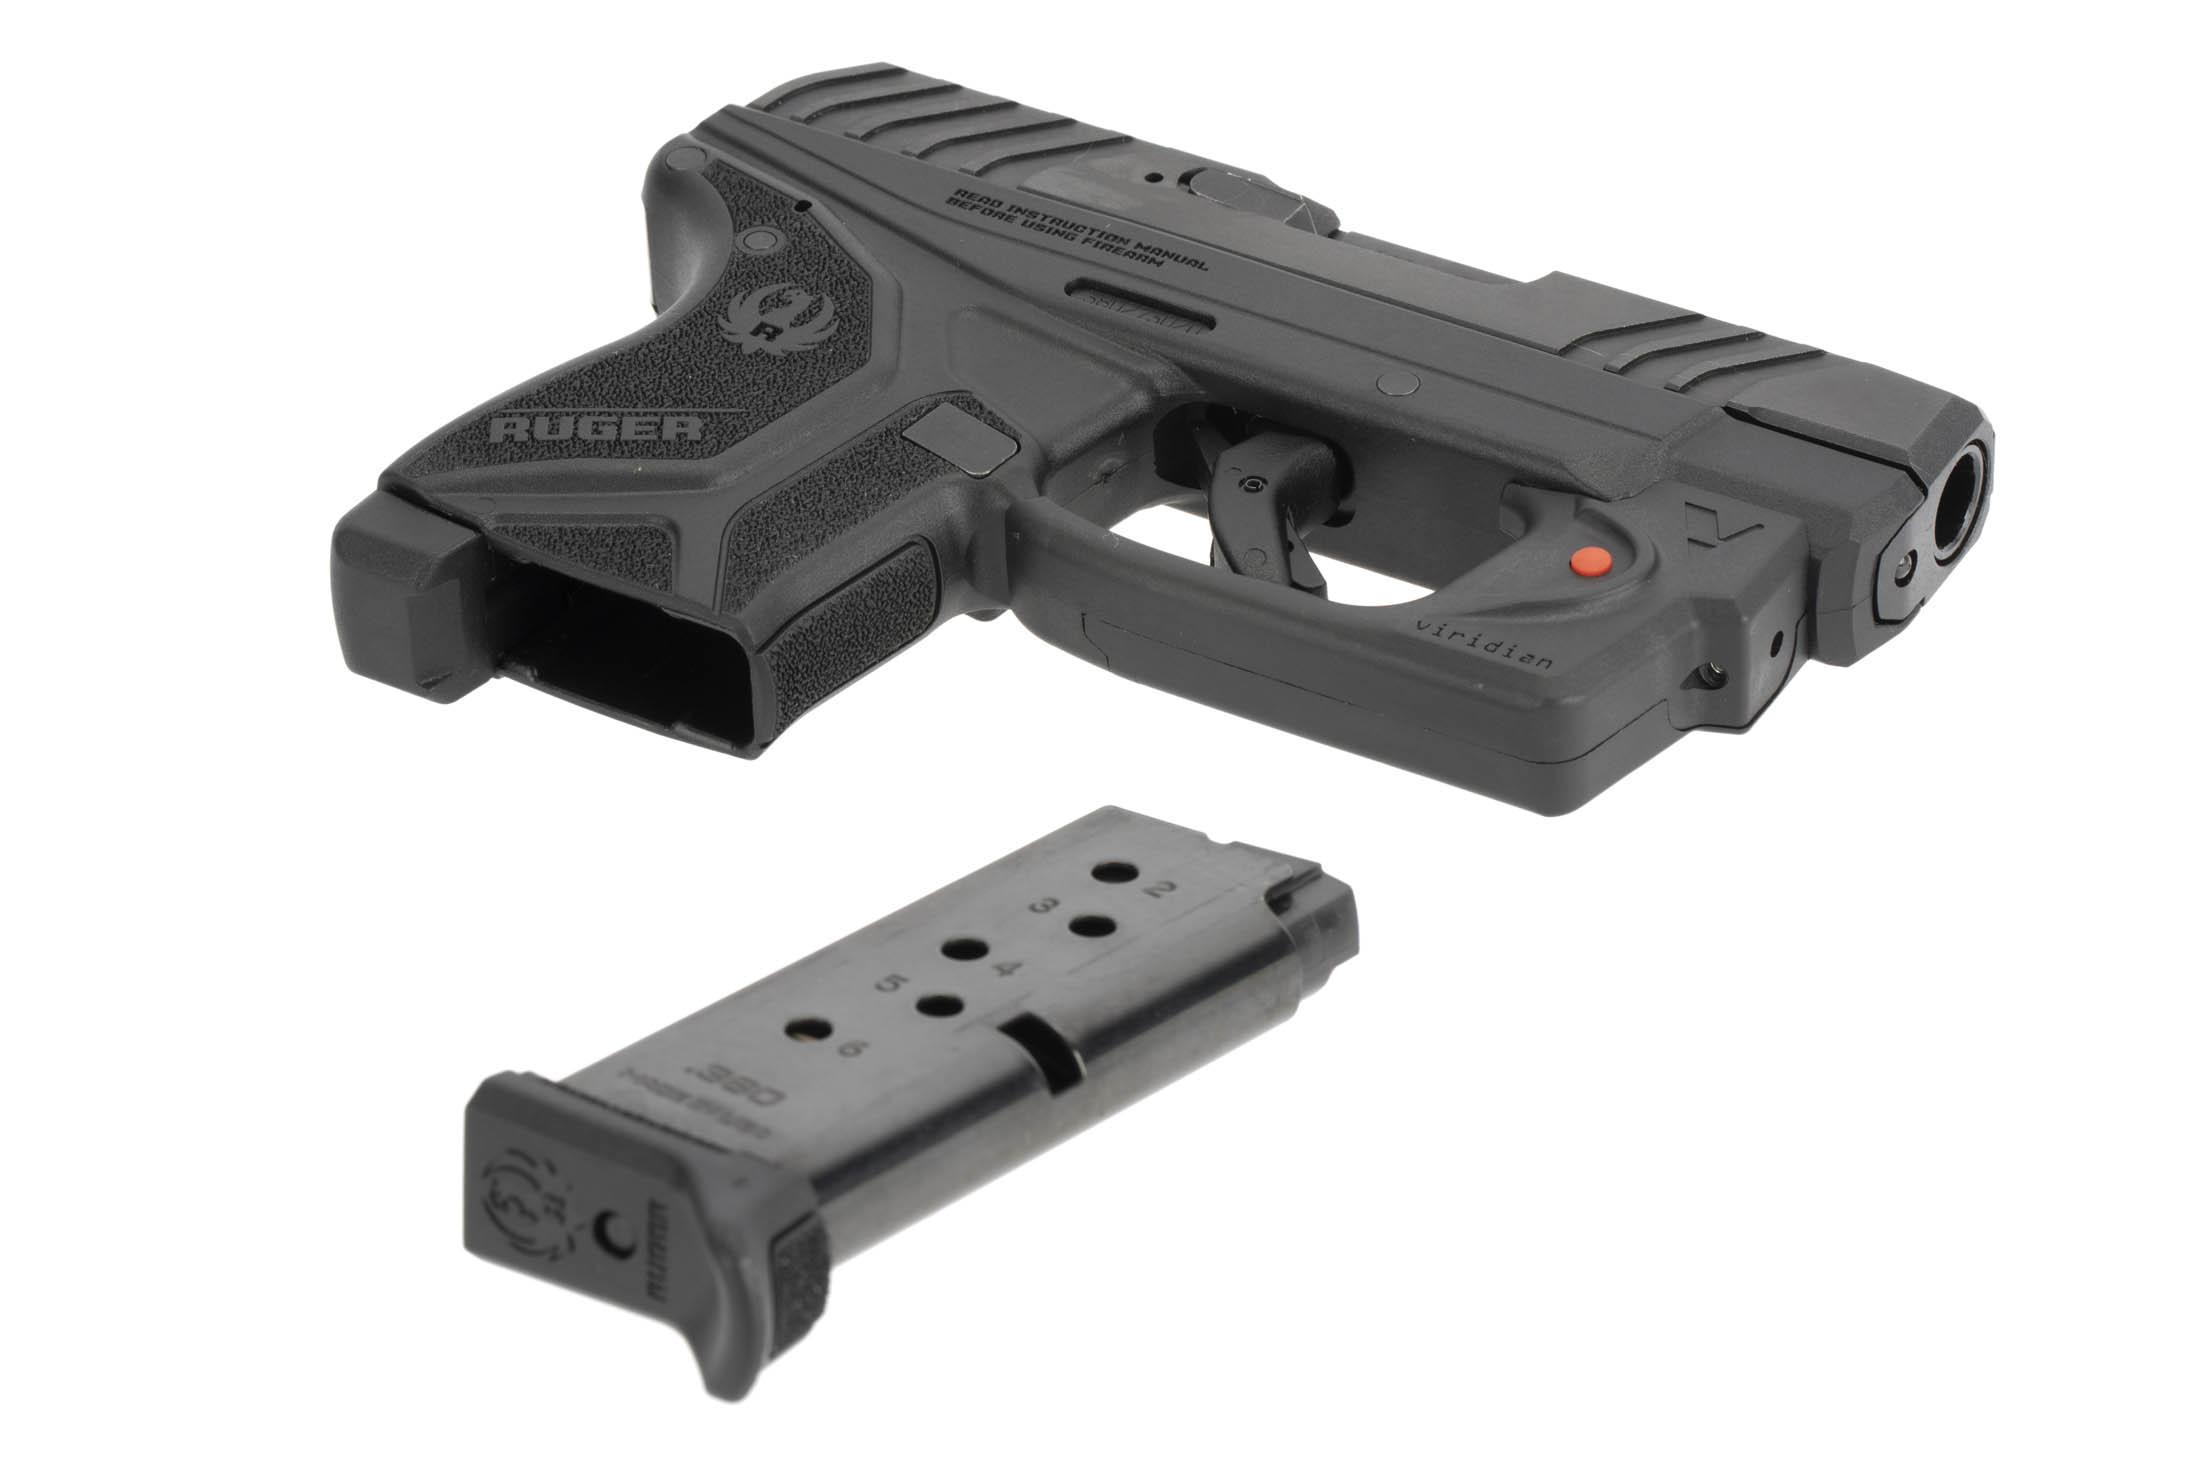 The Ruger LCP II has a 6 round single stack flush fit magazine